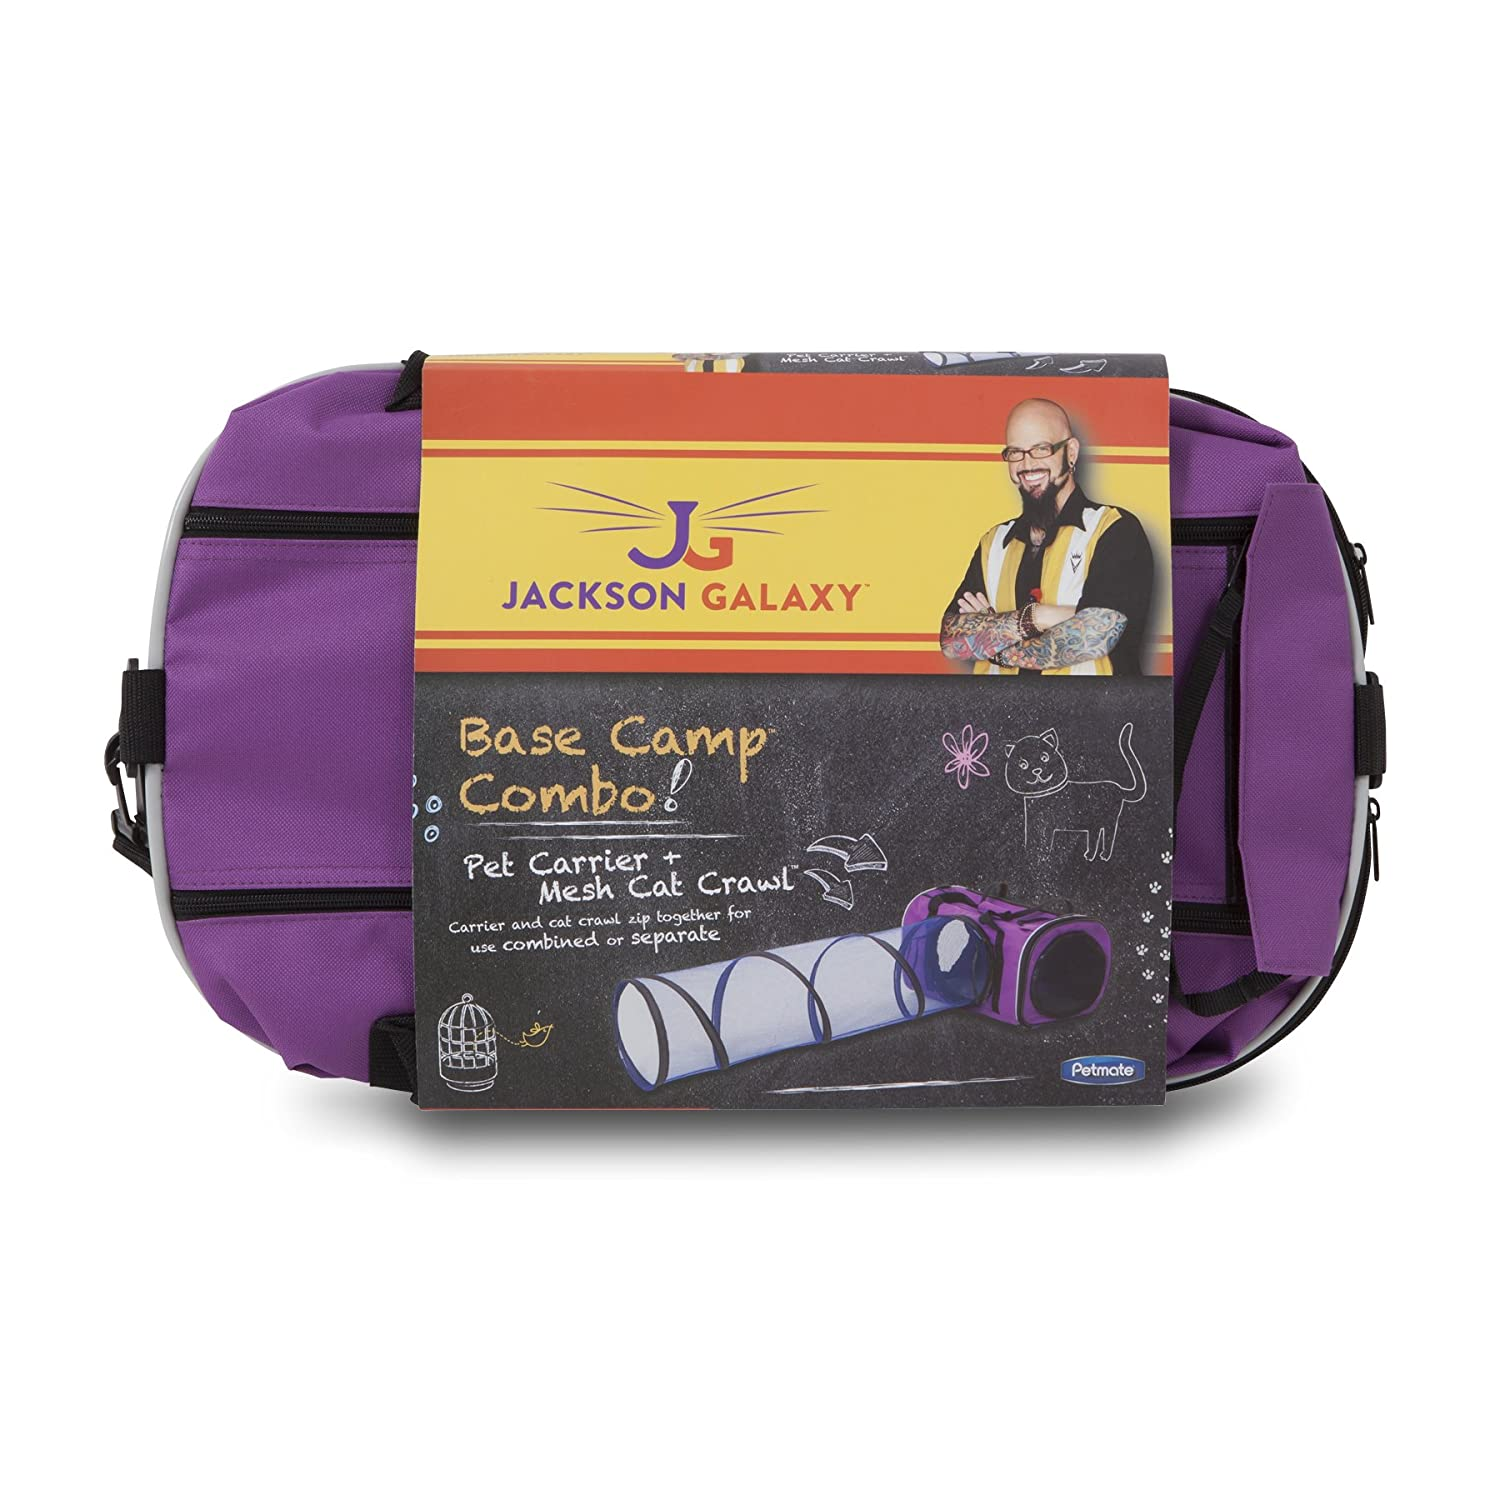 Jackson Galaxy Base Camp Carrier mit Mesh Tunnel